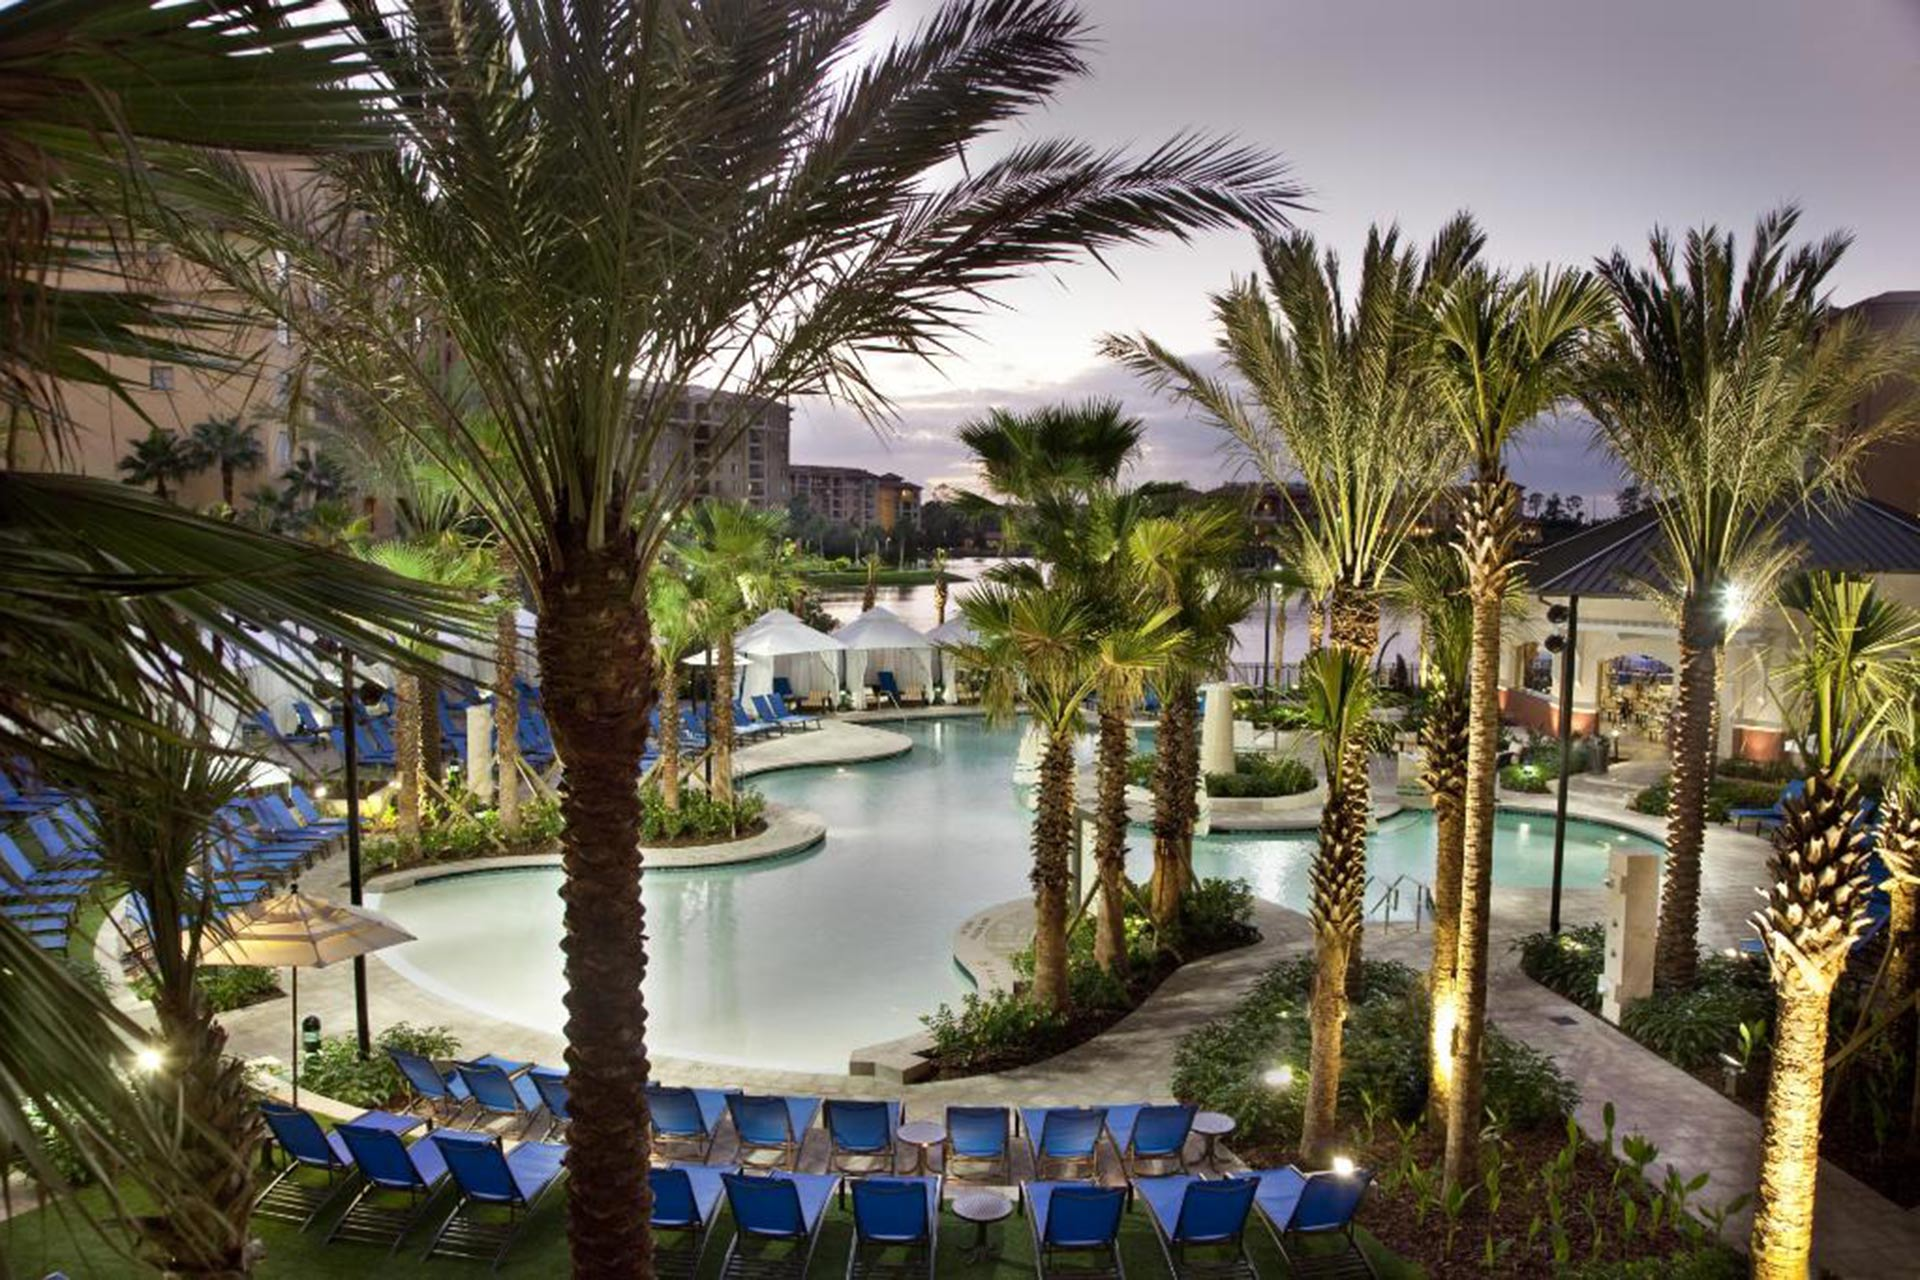 Wyndham Grand Orlando Resort Bonnet Creek in Florida